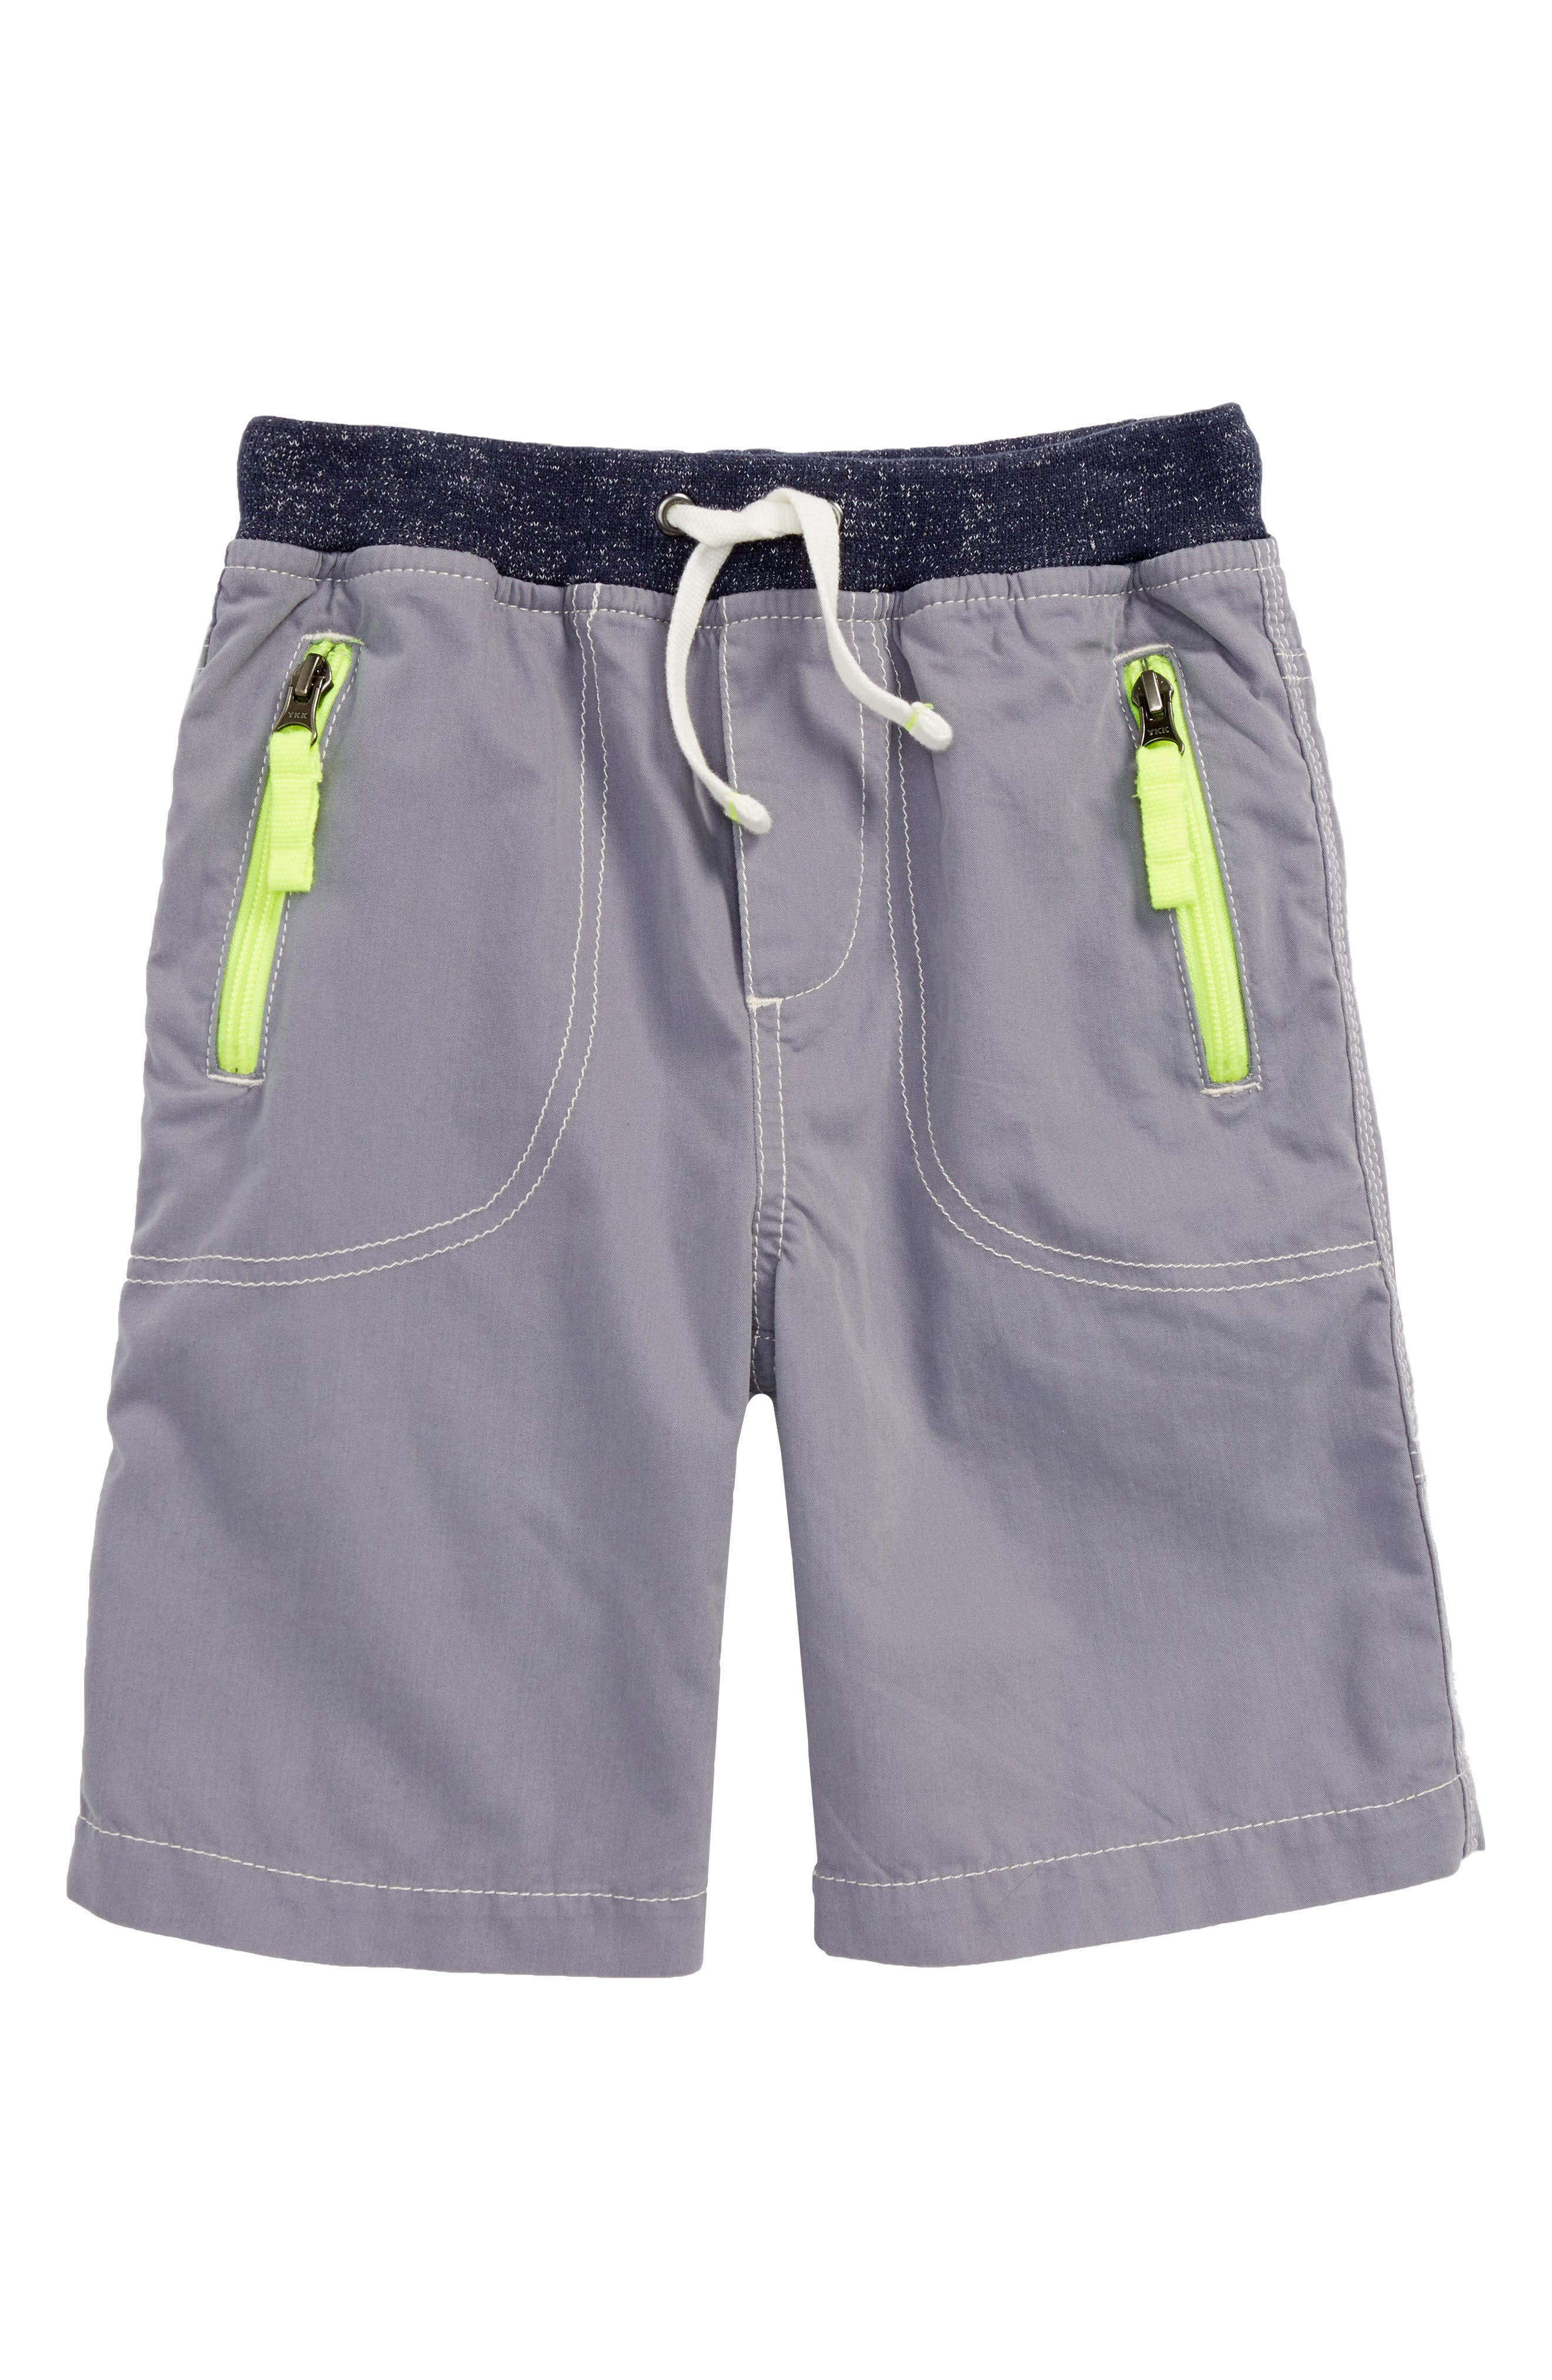 Adventure Shorts,                         Main,                         color, 062